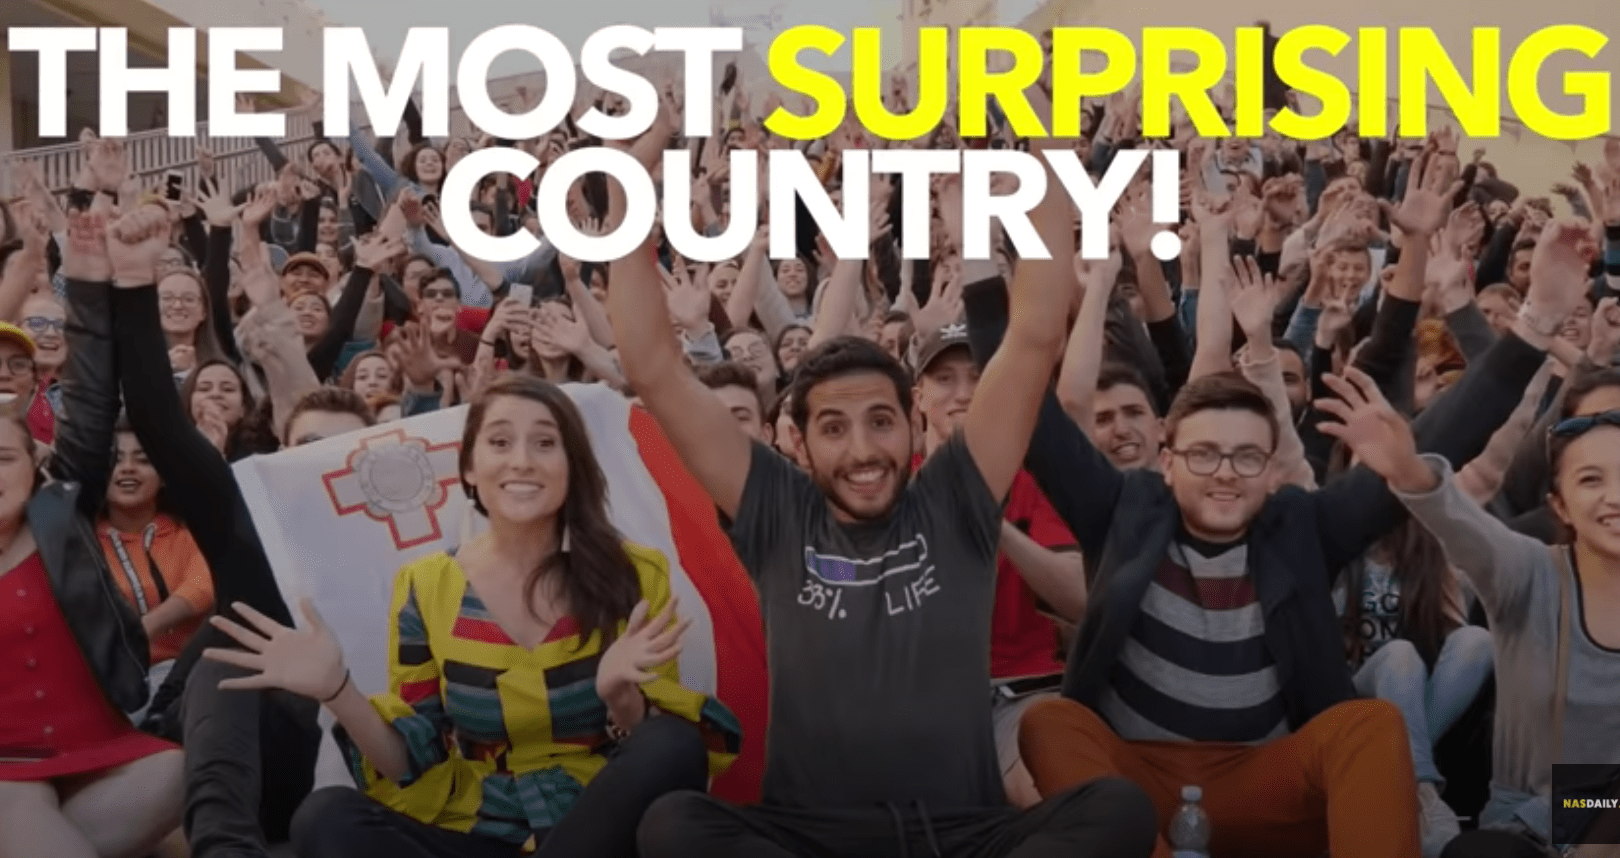 Nas Daily / The most surprising country.